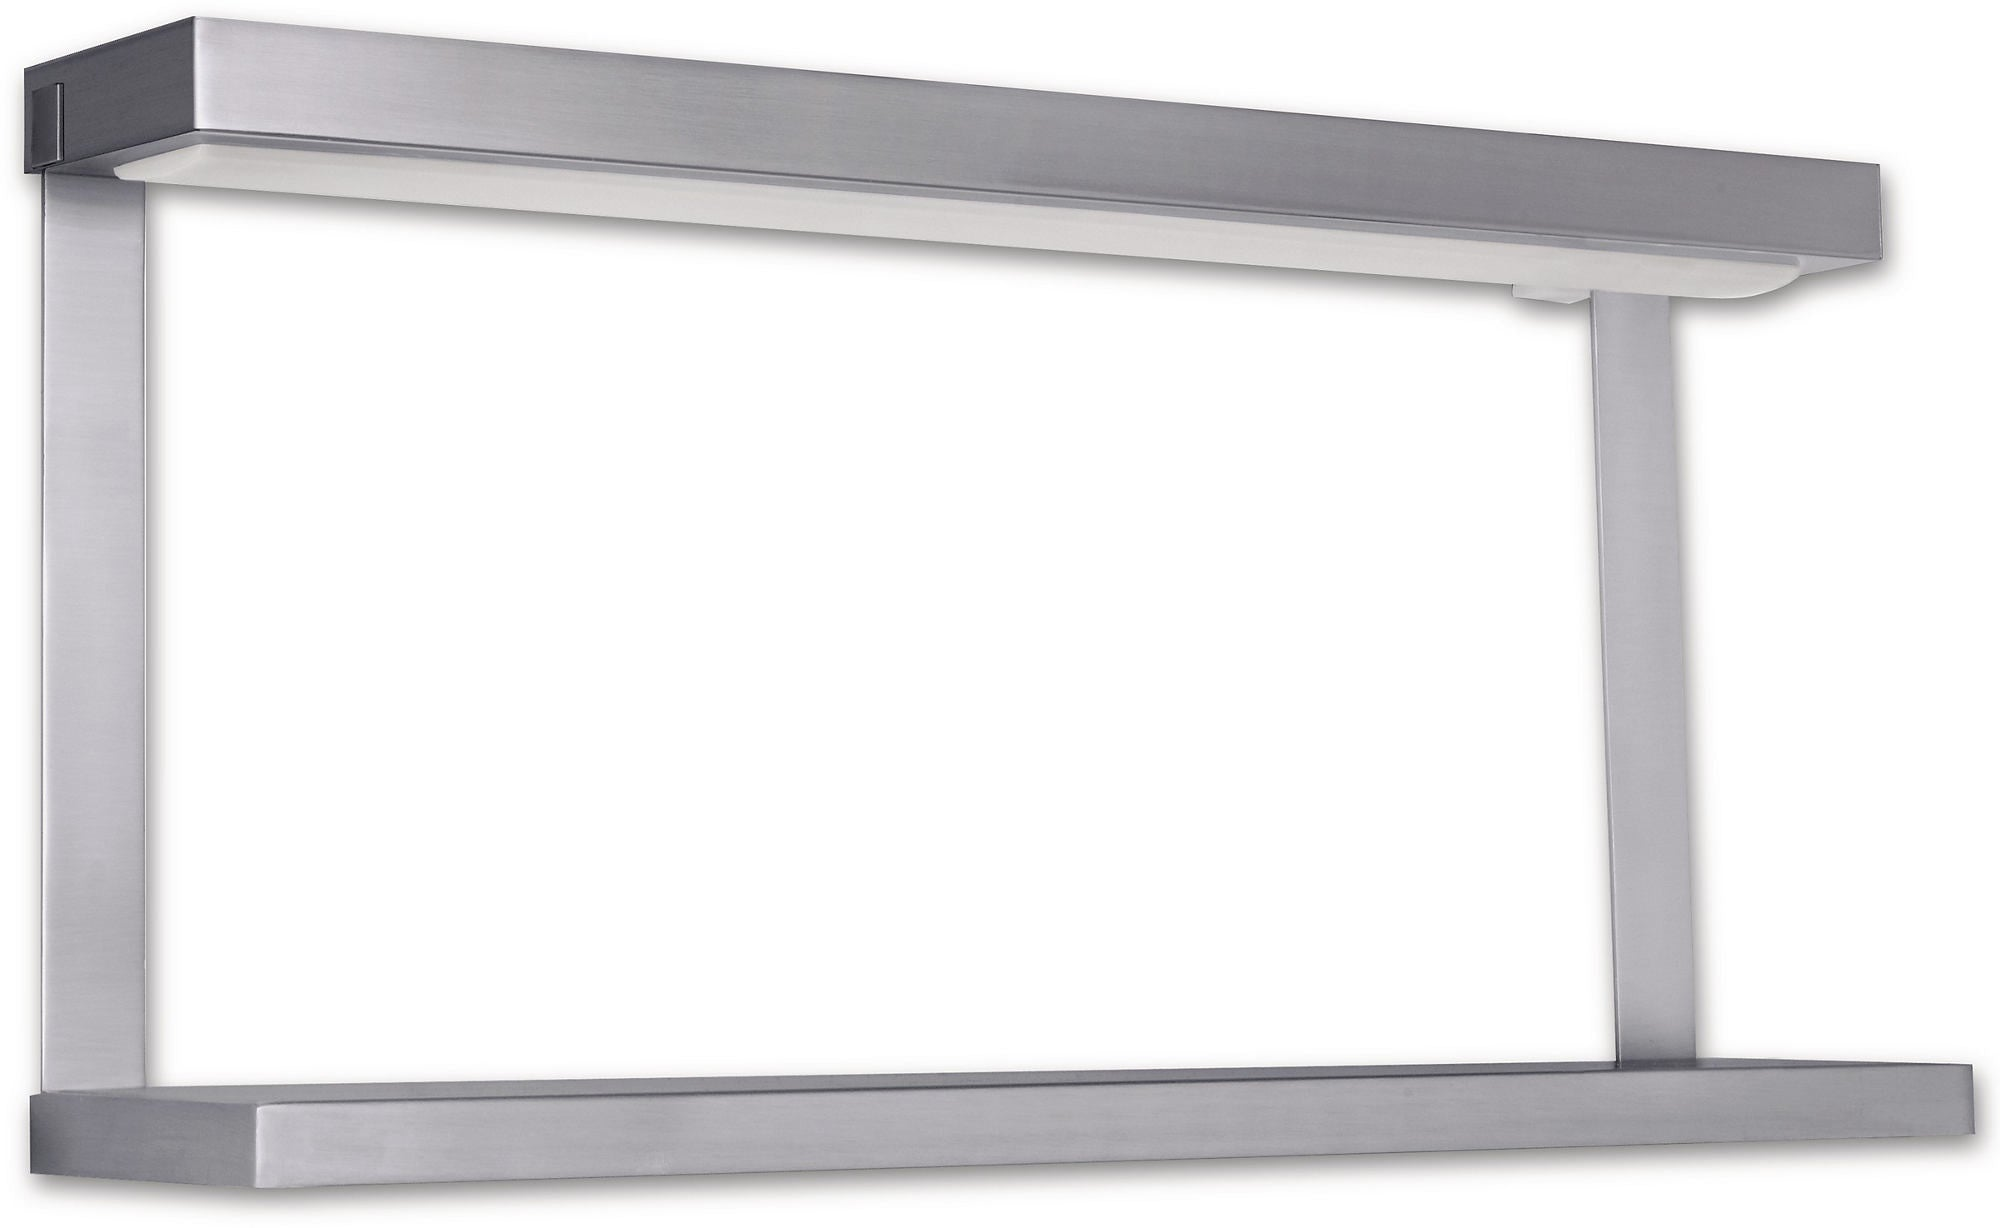 Philips KitchenMoods Wall Light